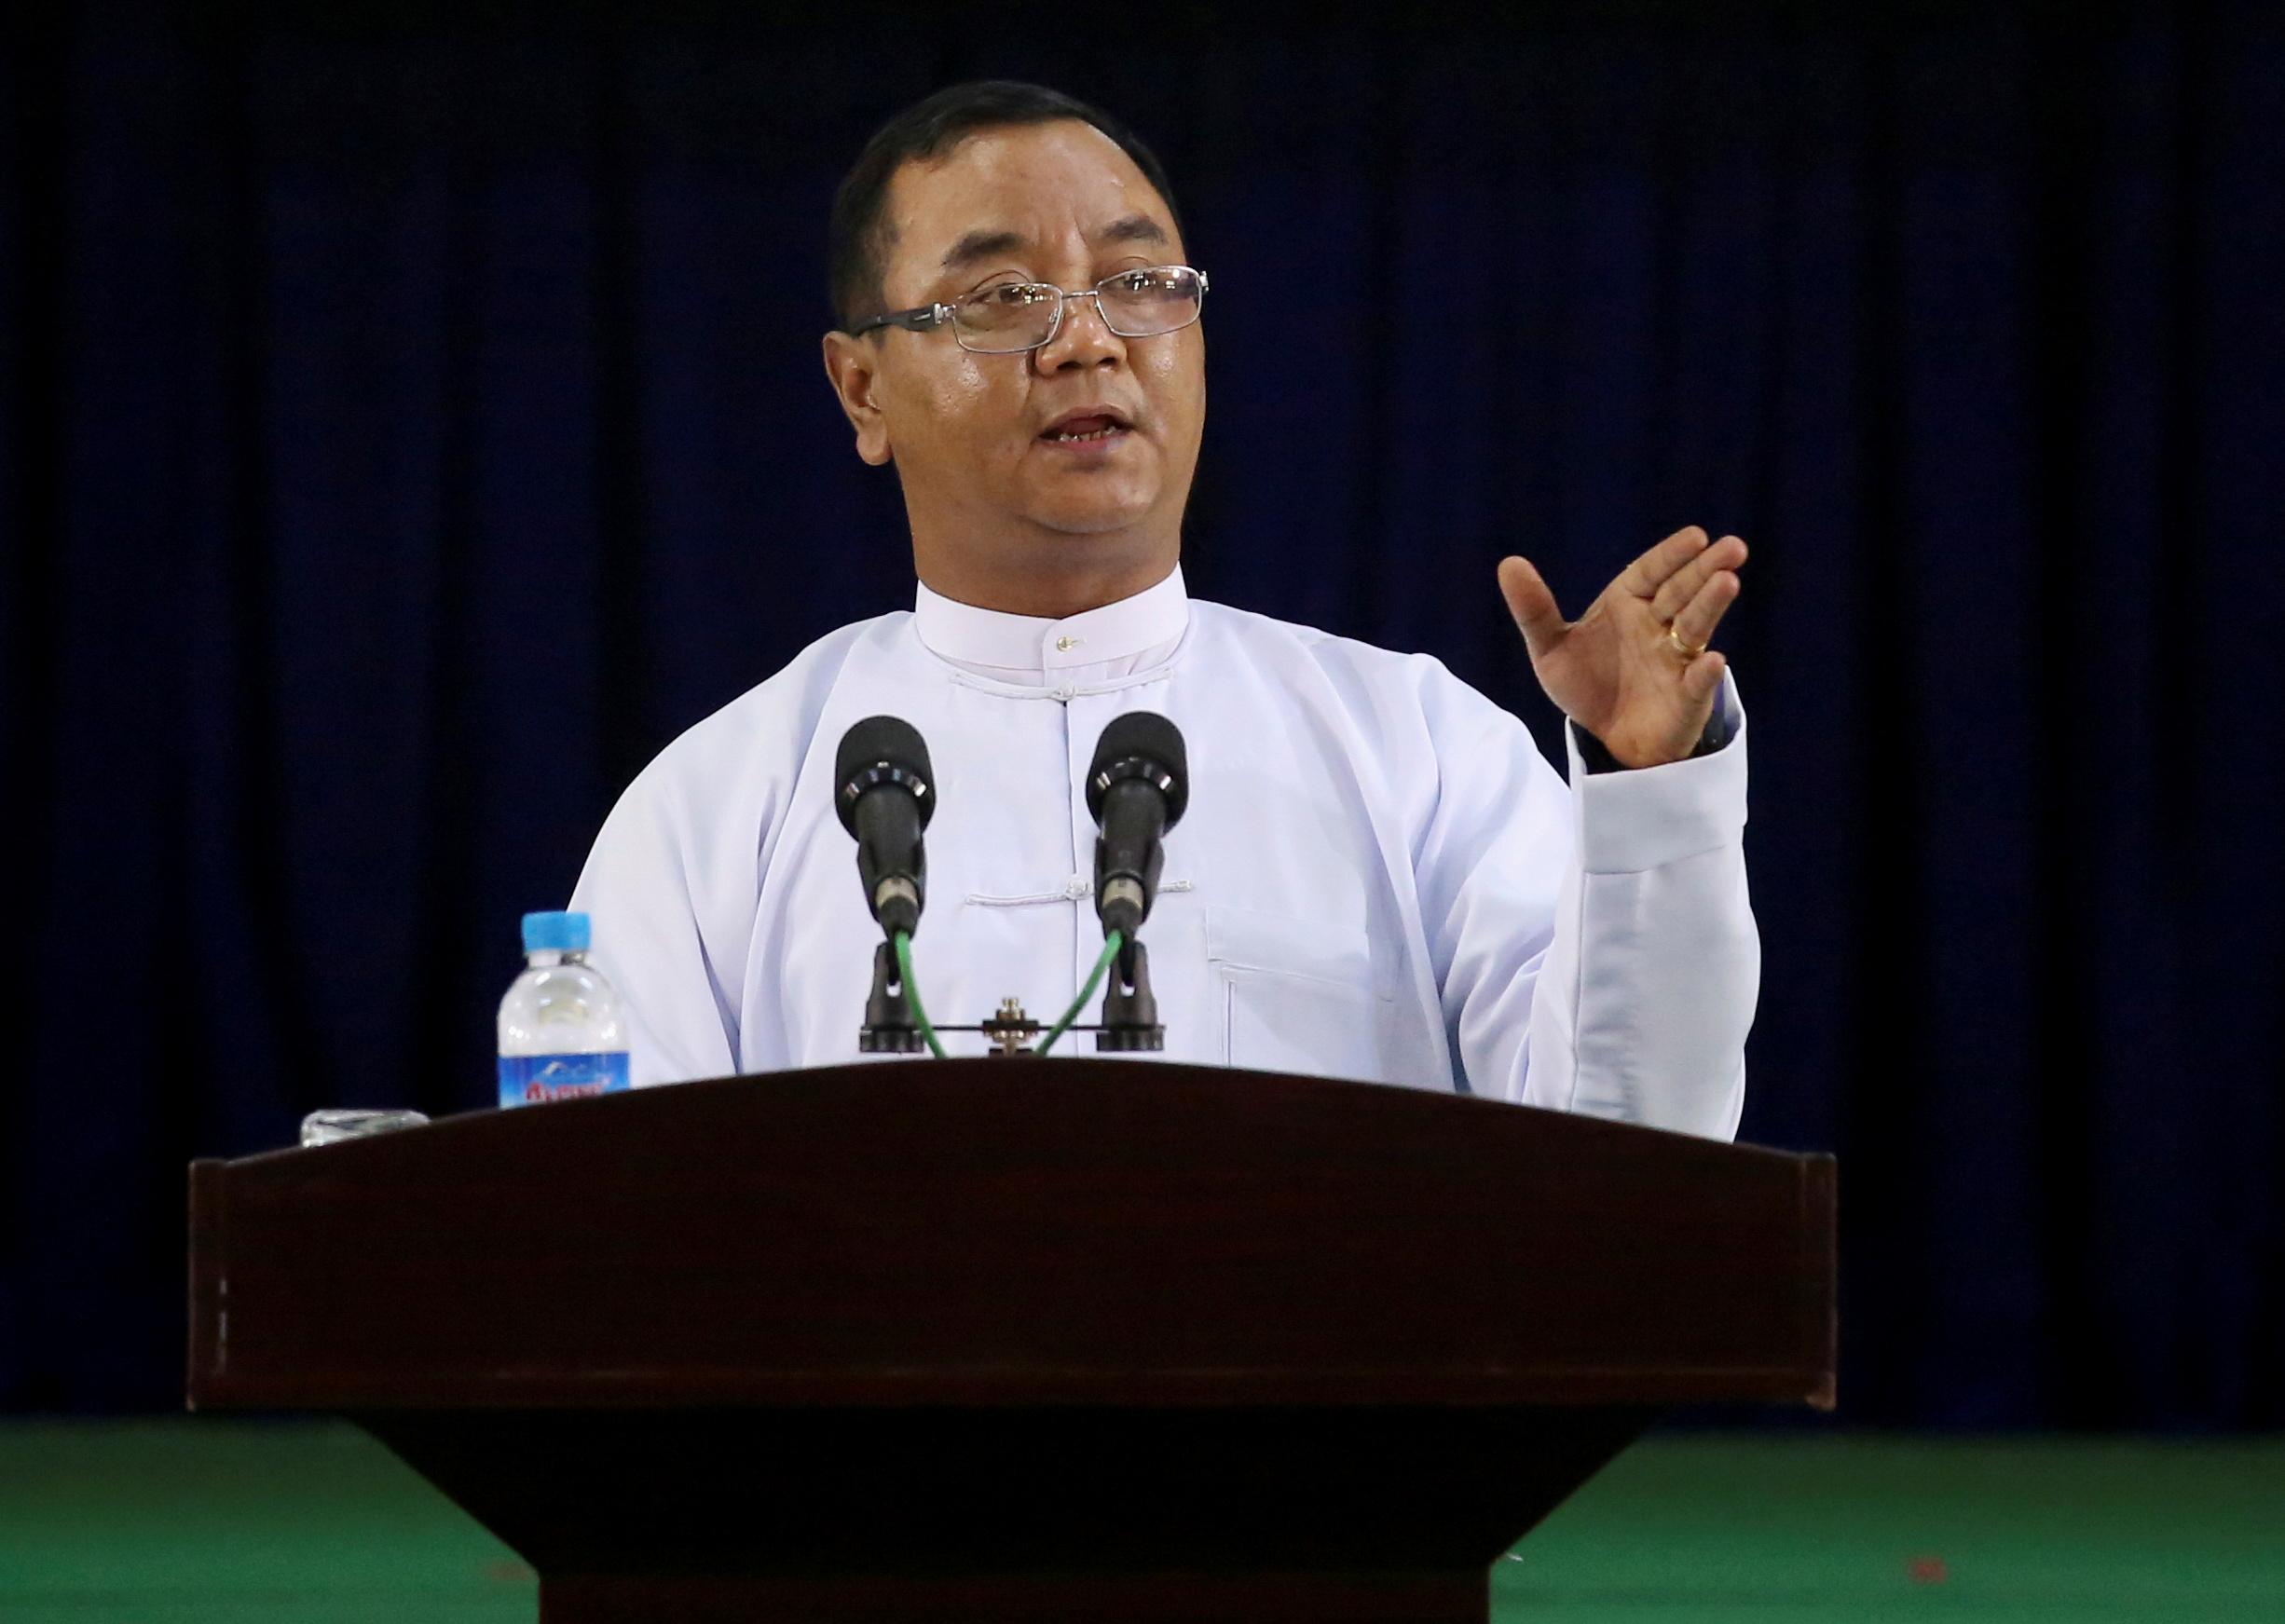 Myanmar's military junta spokesman Zaw Min Tun speaks during the information ministry's press conference in Naypyitaw, Myanmar, March 23, 2021. REUTERS/Stringer